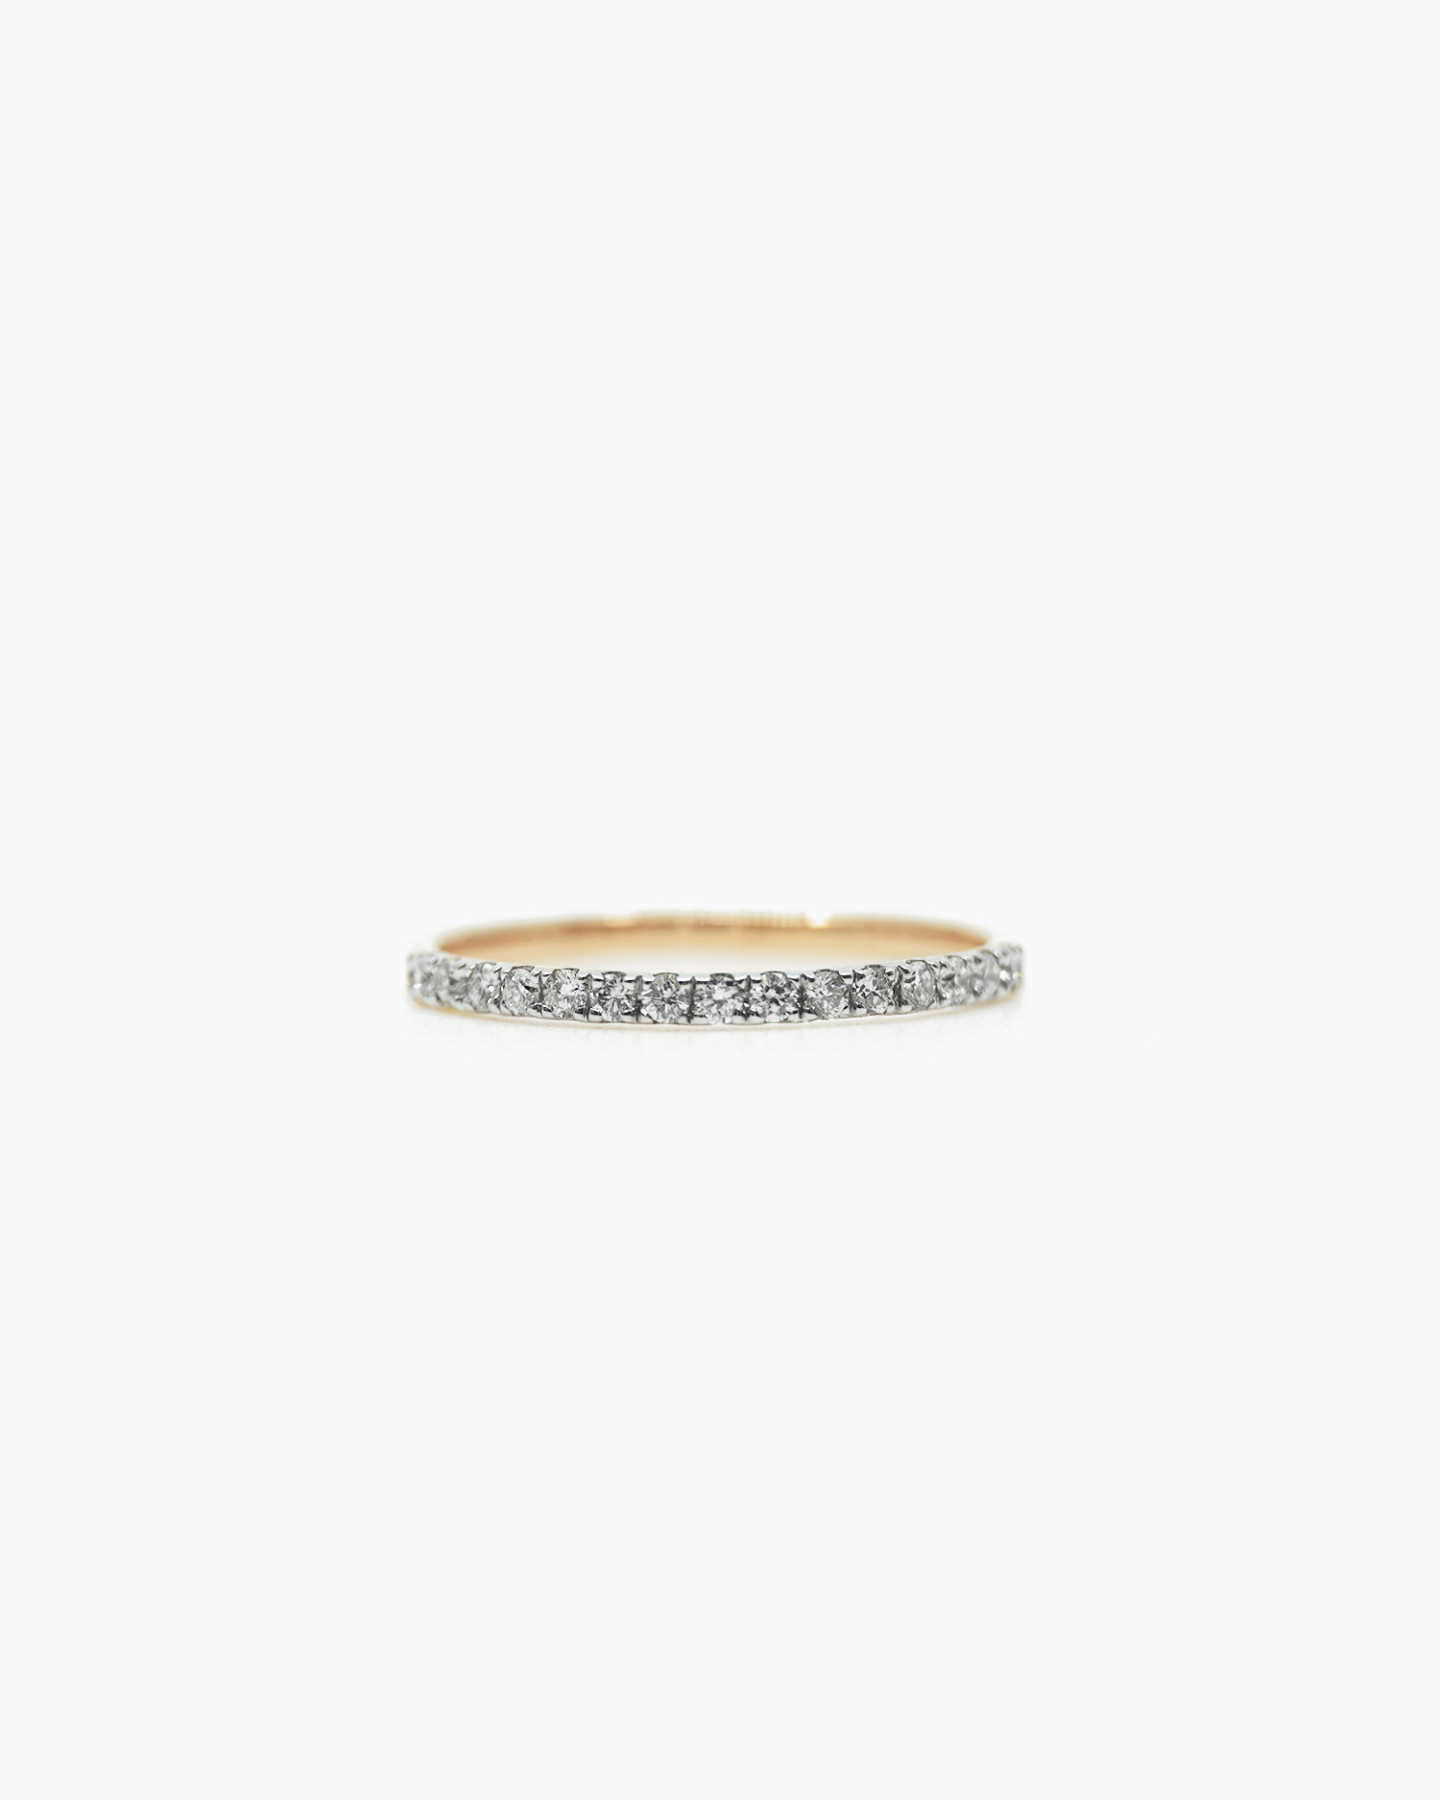 Diamond Wedding Band - Yellow Gold - 0